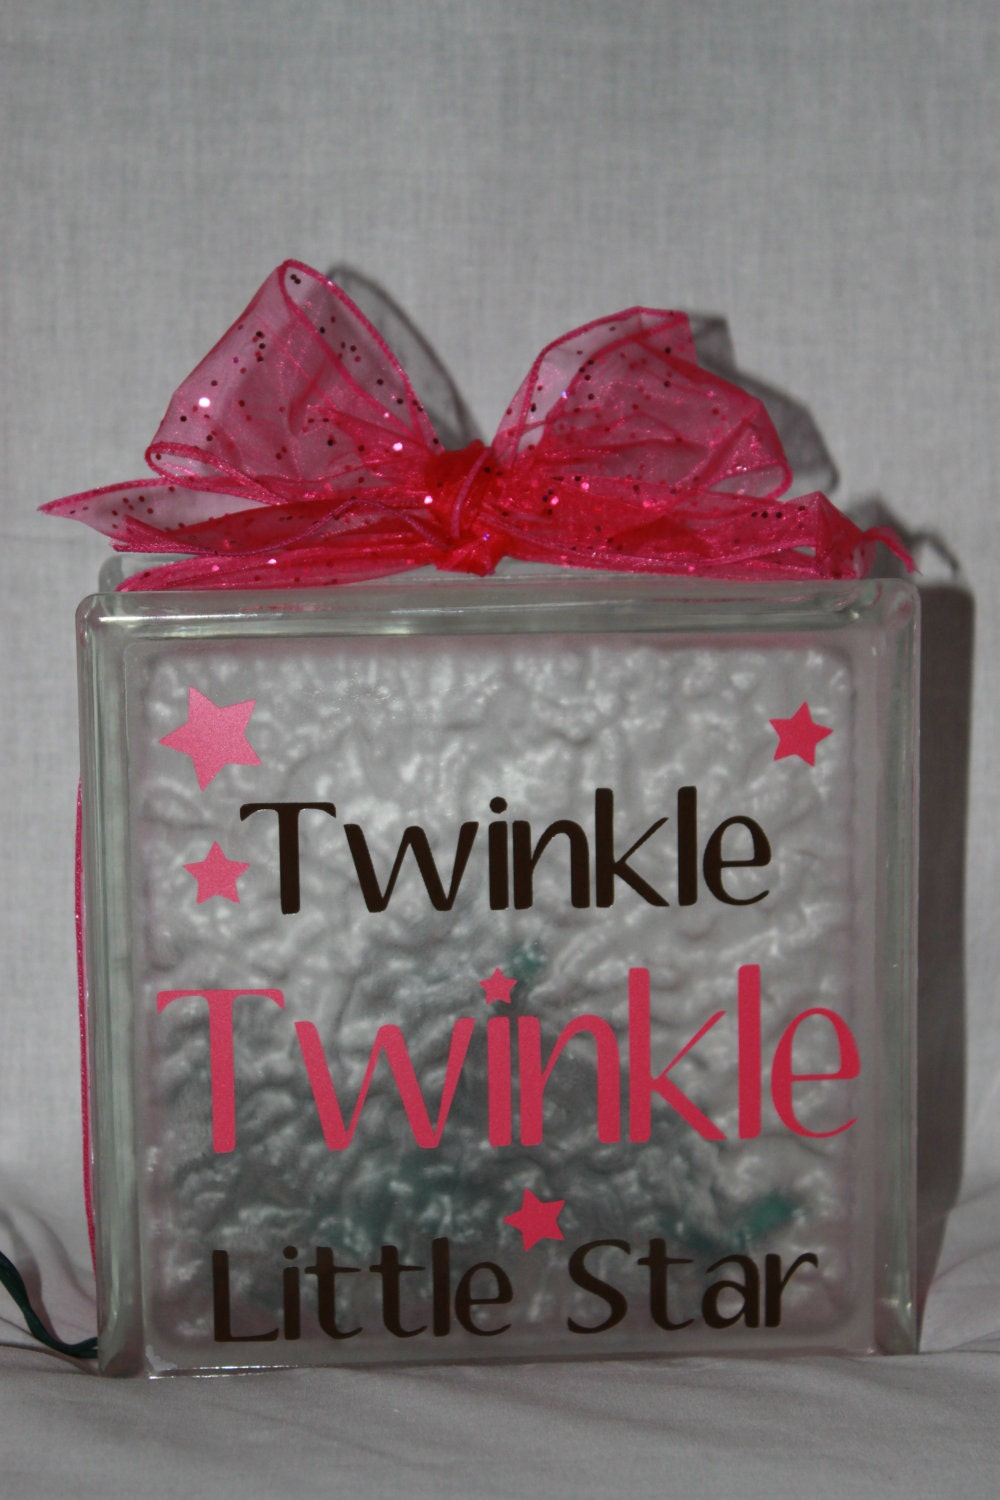 Twinkle Twinkle Little Star Diy Decal For Glass By Worldofakd